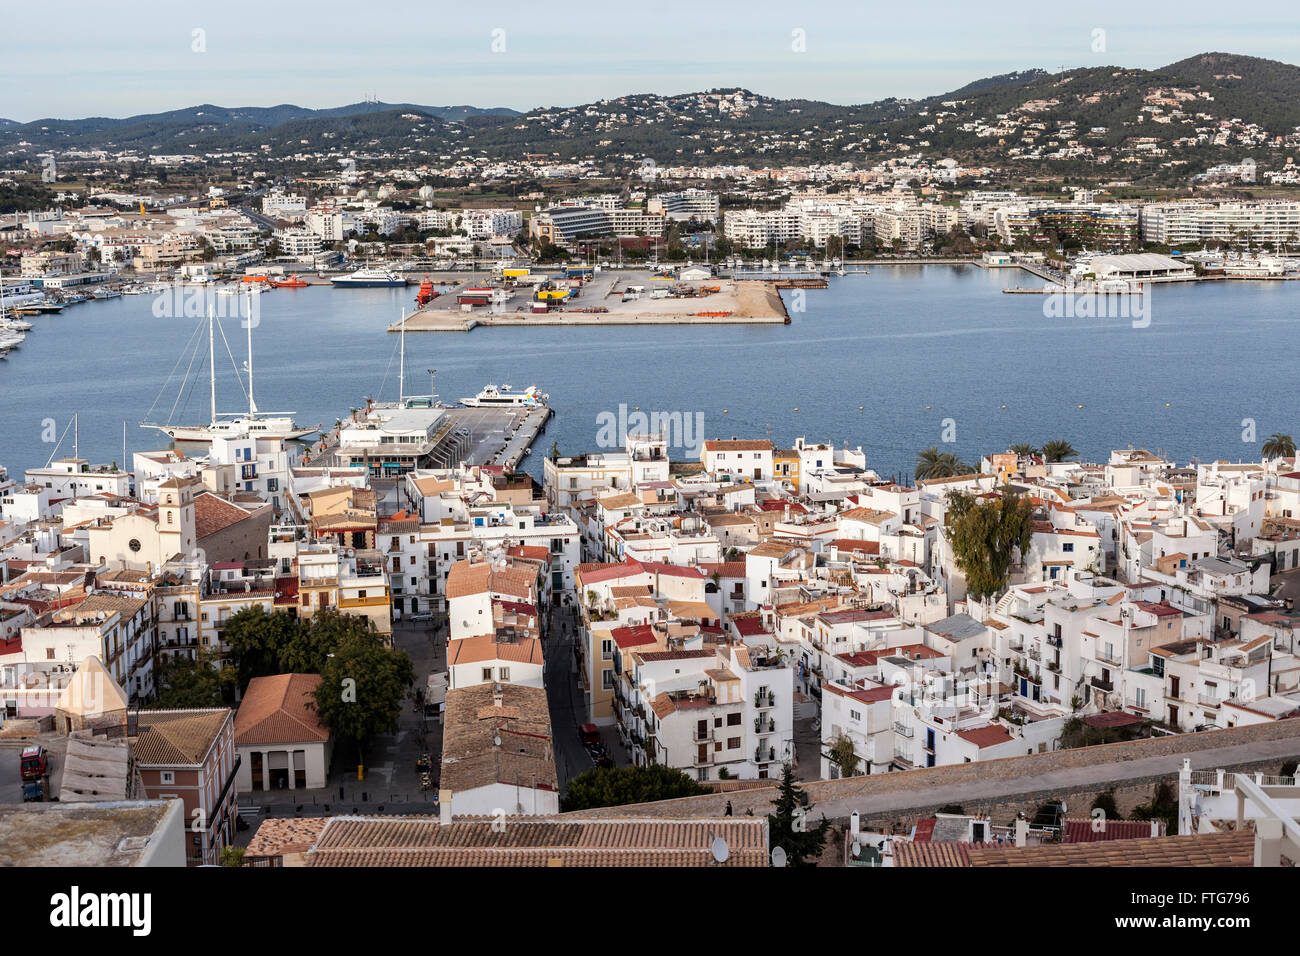 Ibiza-Eivissa,Balearic Islands,Spain. - Stock Image